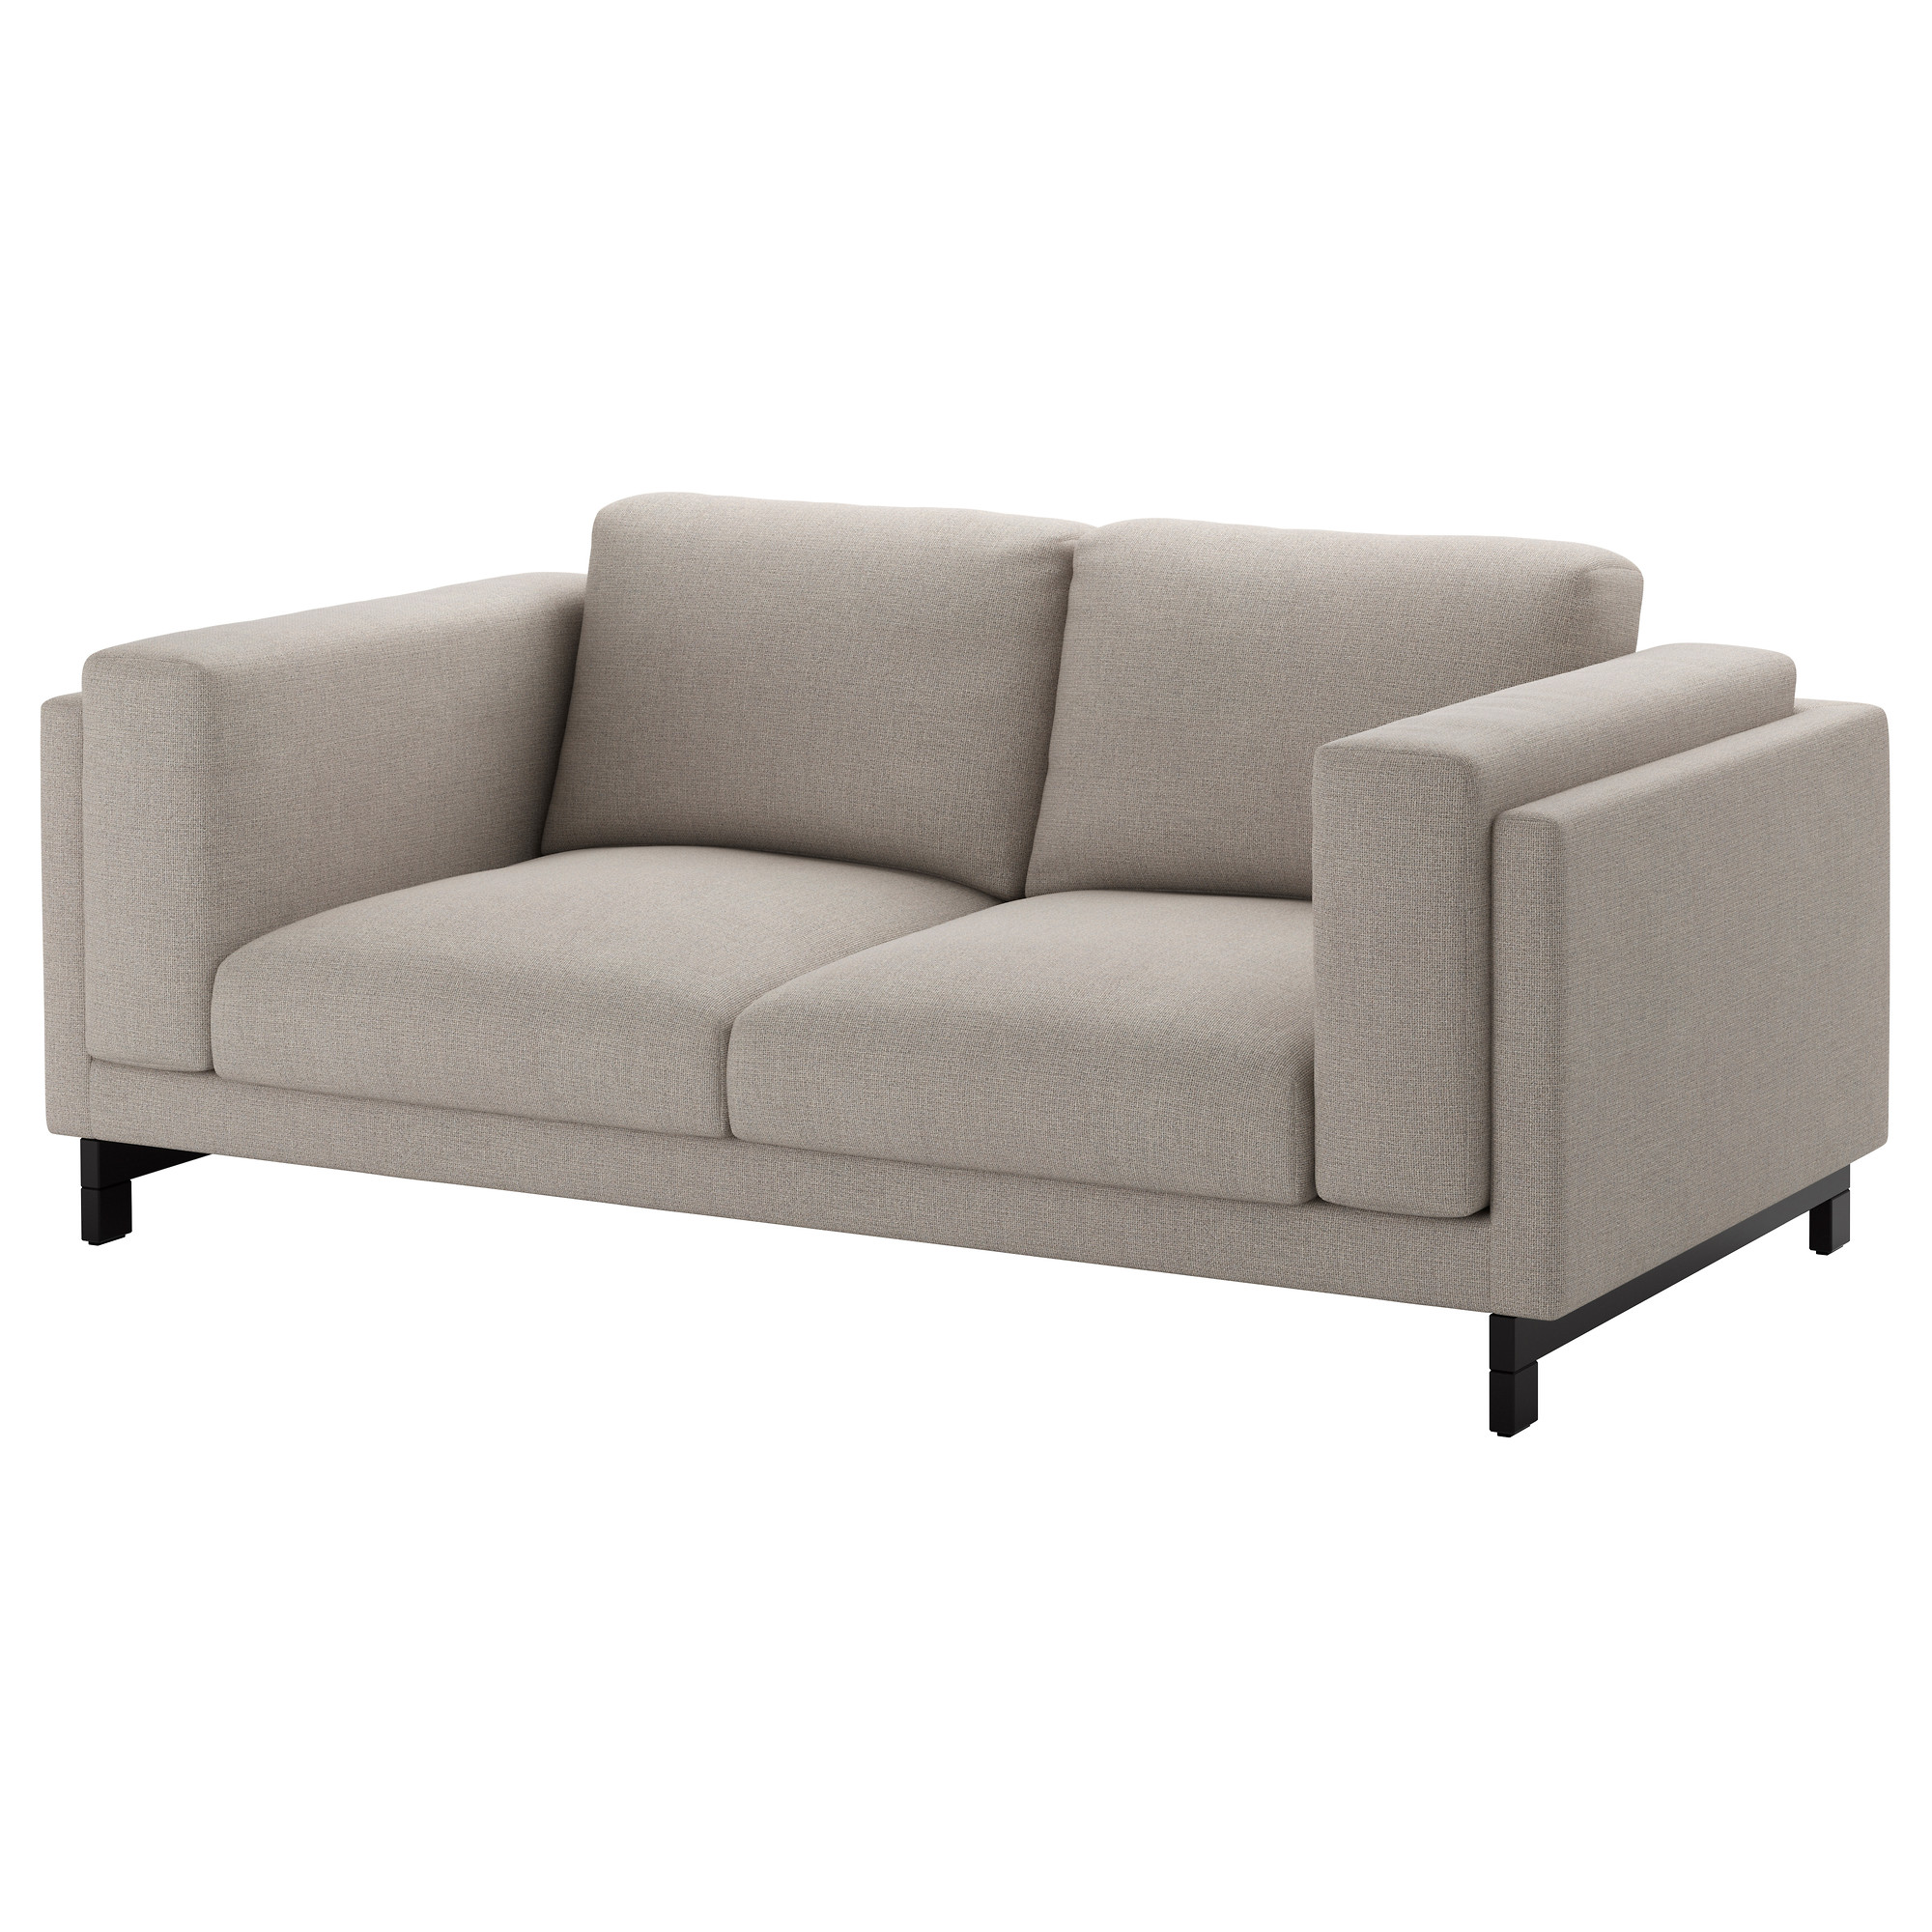 2er Sofas Ikea Nockeby Legs For Loveseat Wood Sofa Pinterest Sofa